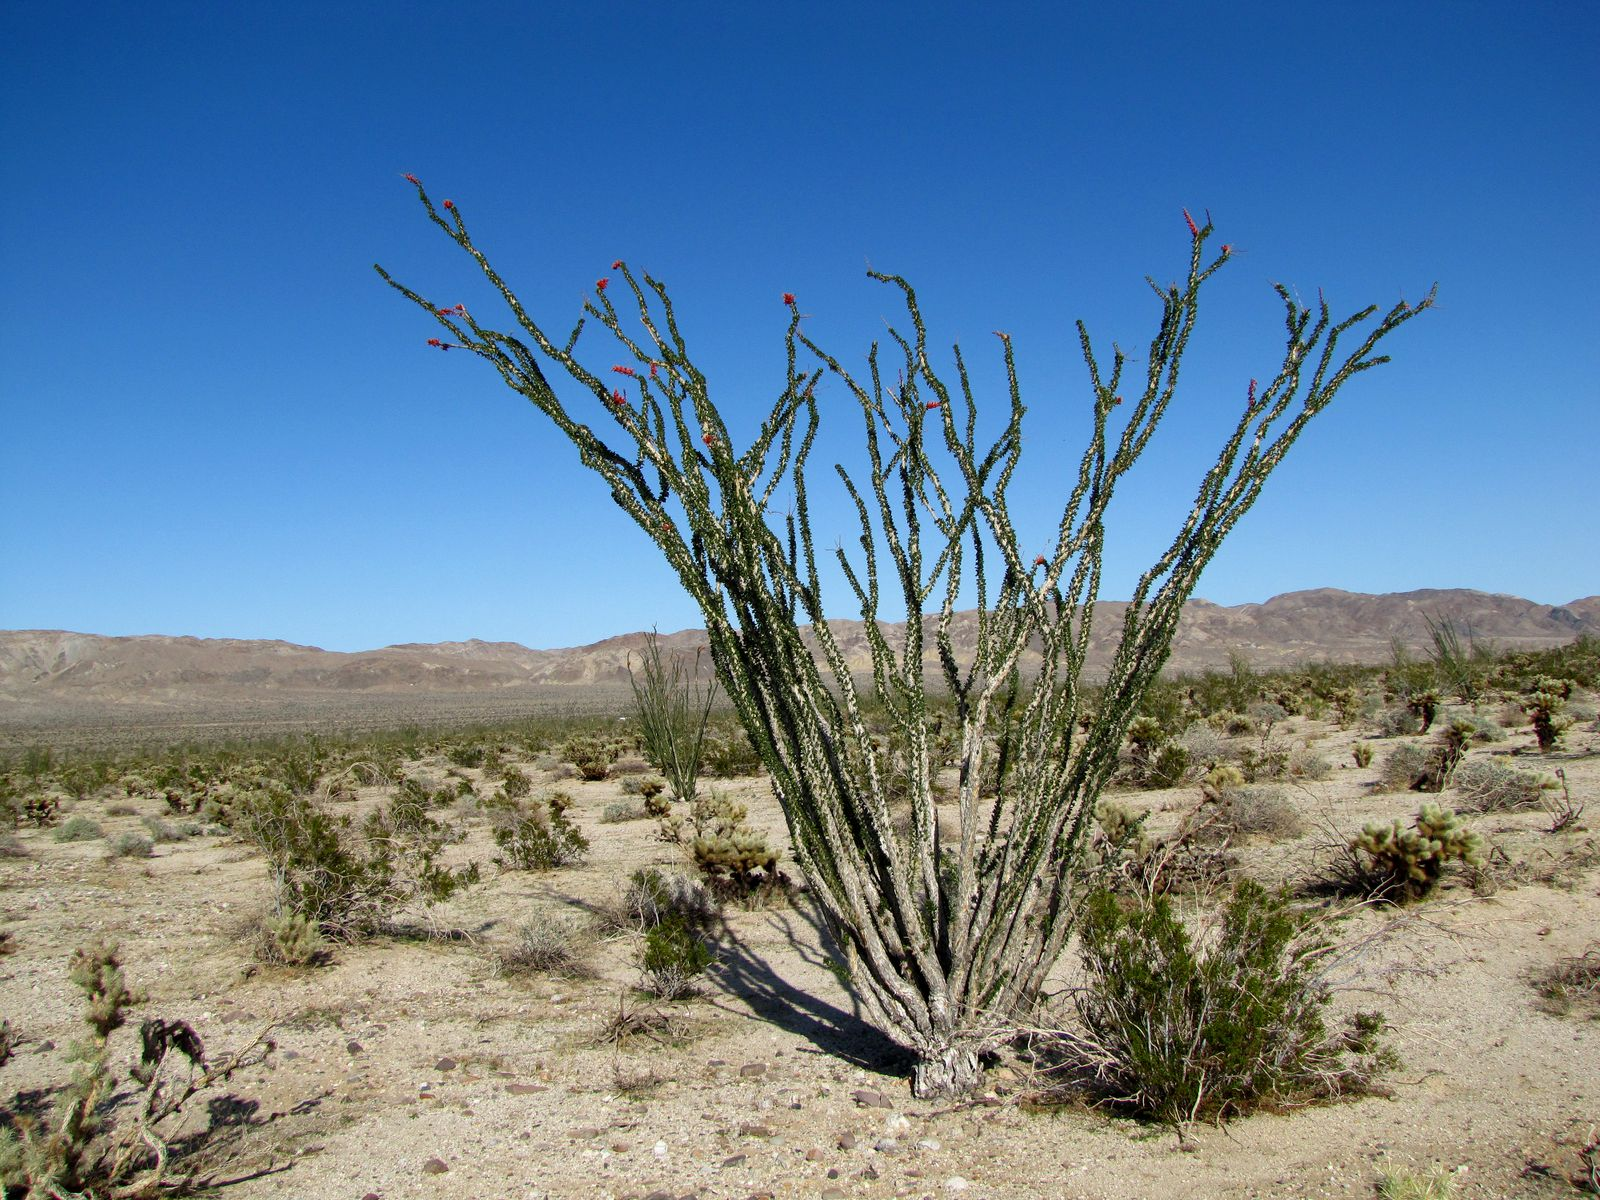 Ocotillo with green leaves and orange blossoms.